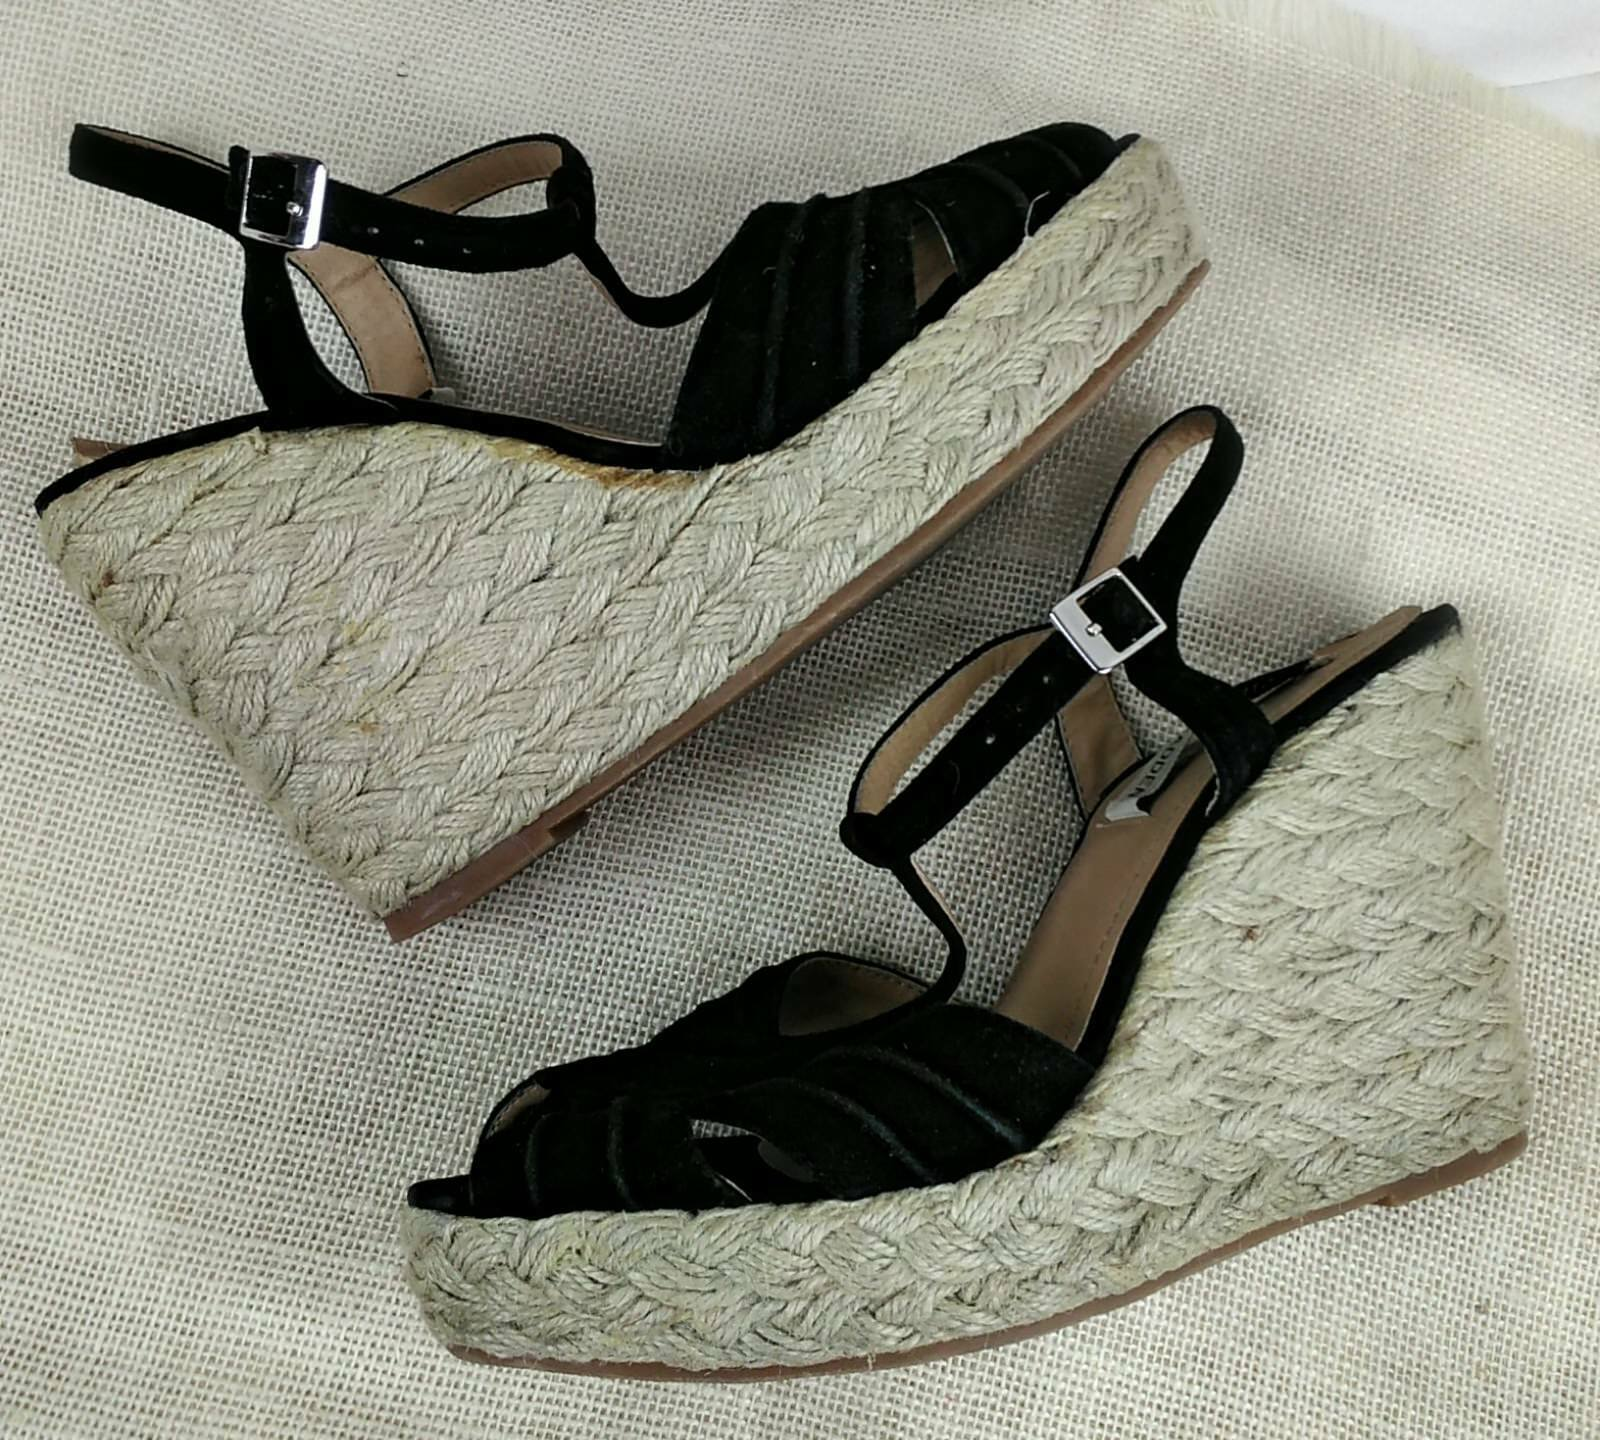 STEVE MADDEN Womens Wedges Shoes Size Open 9 Black Suede Strappy Open Size Toe High Buckle 744985